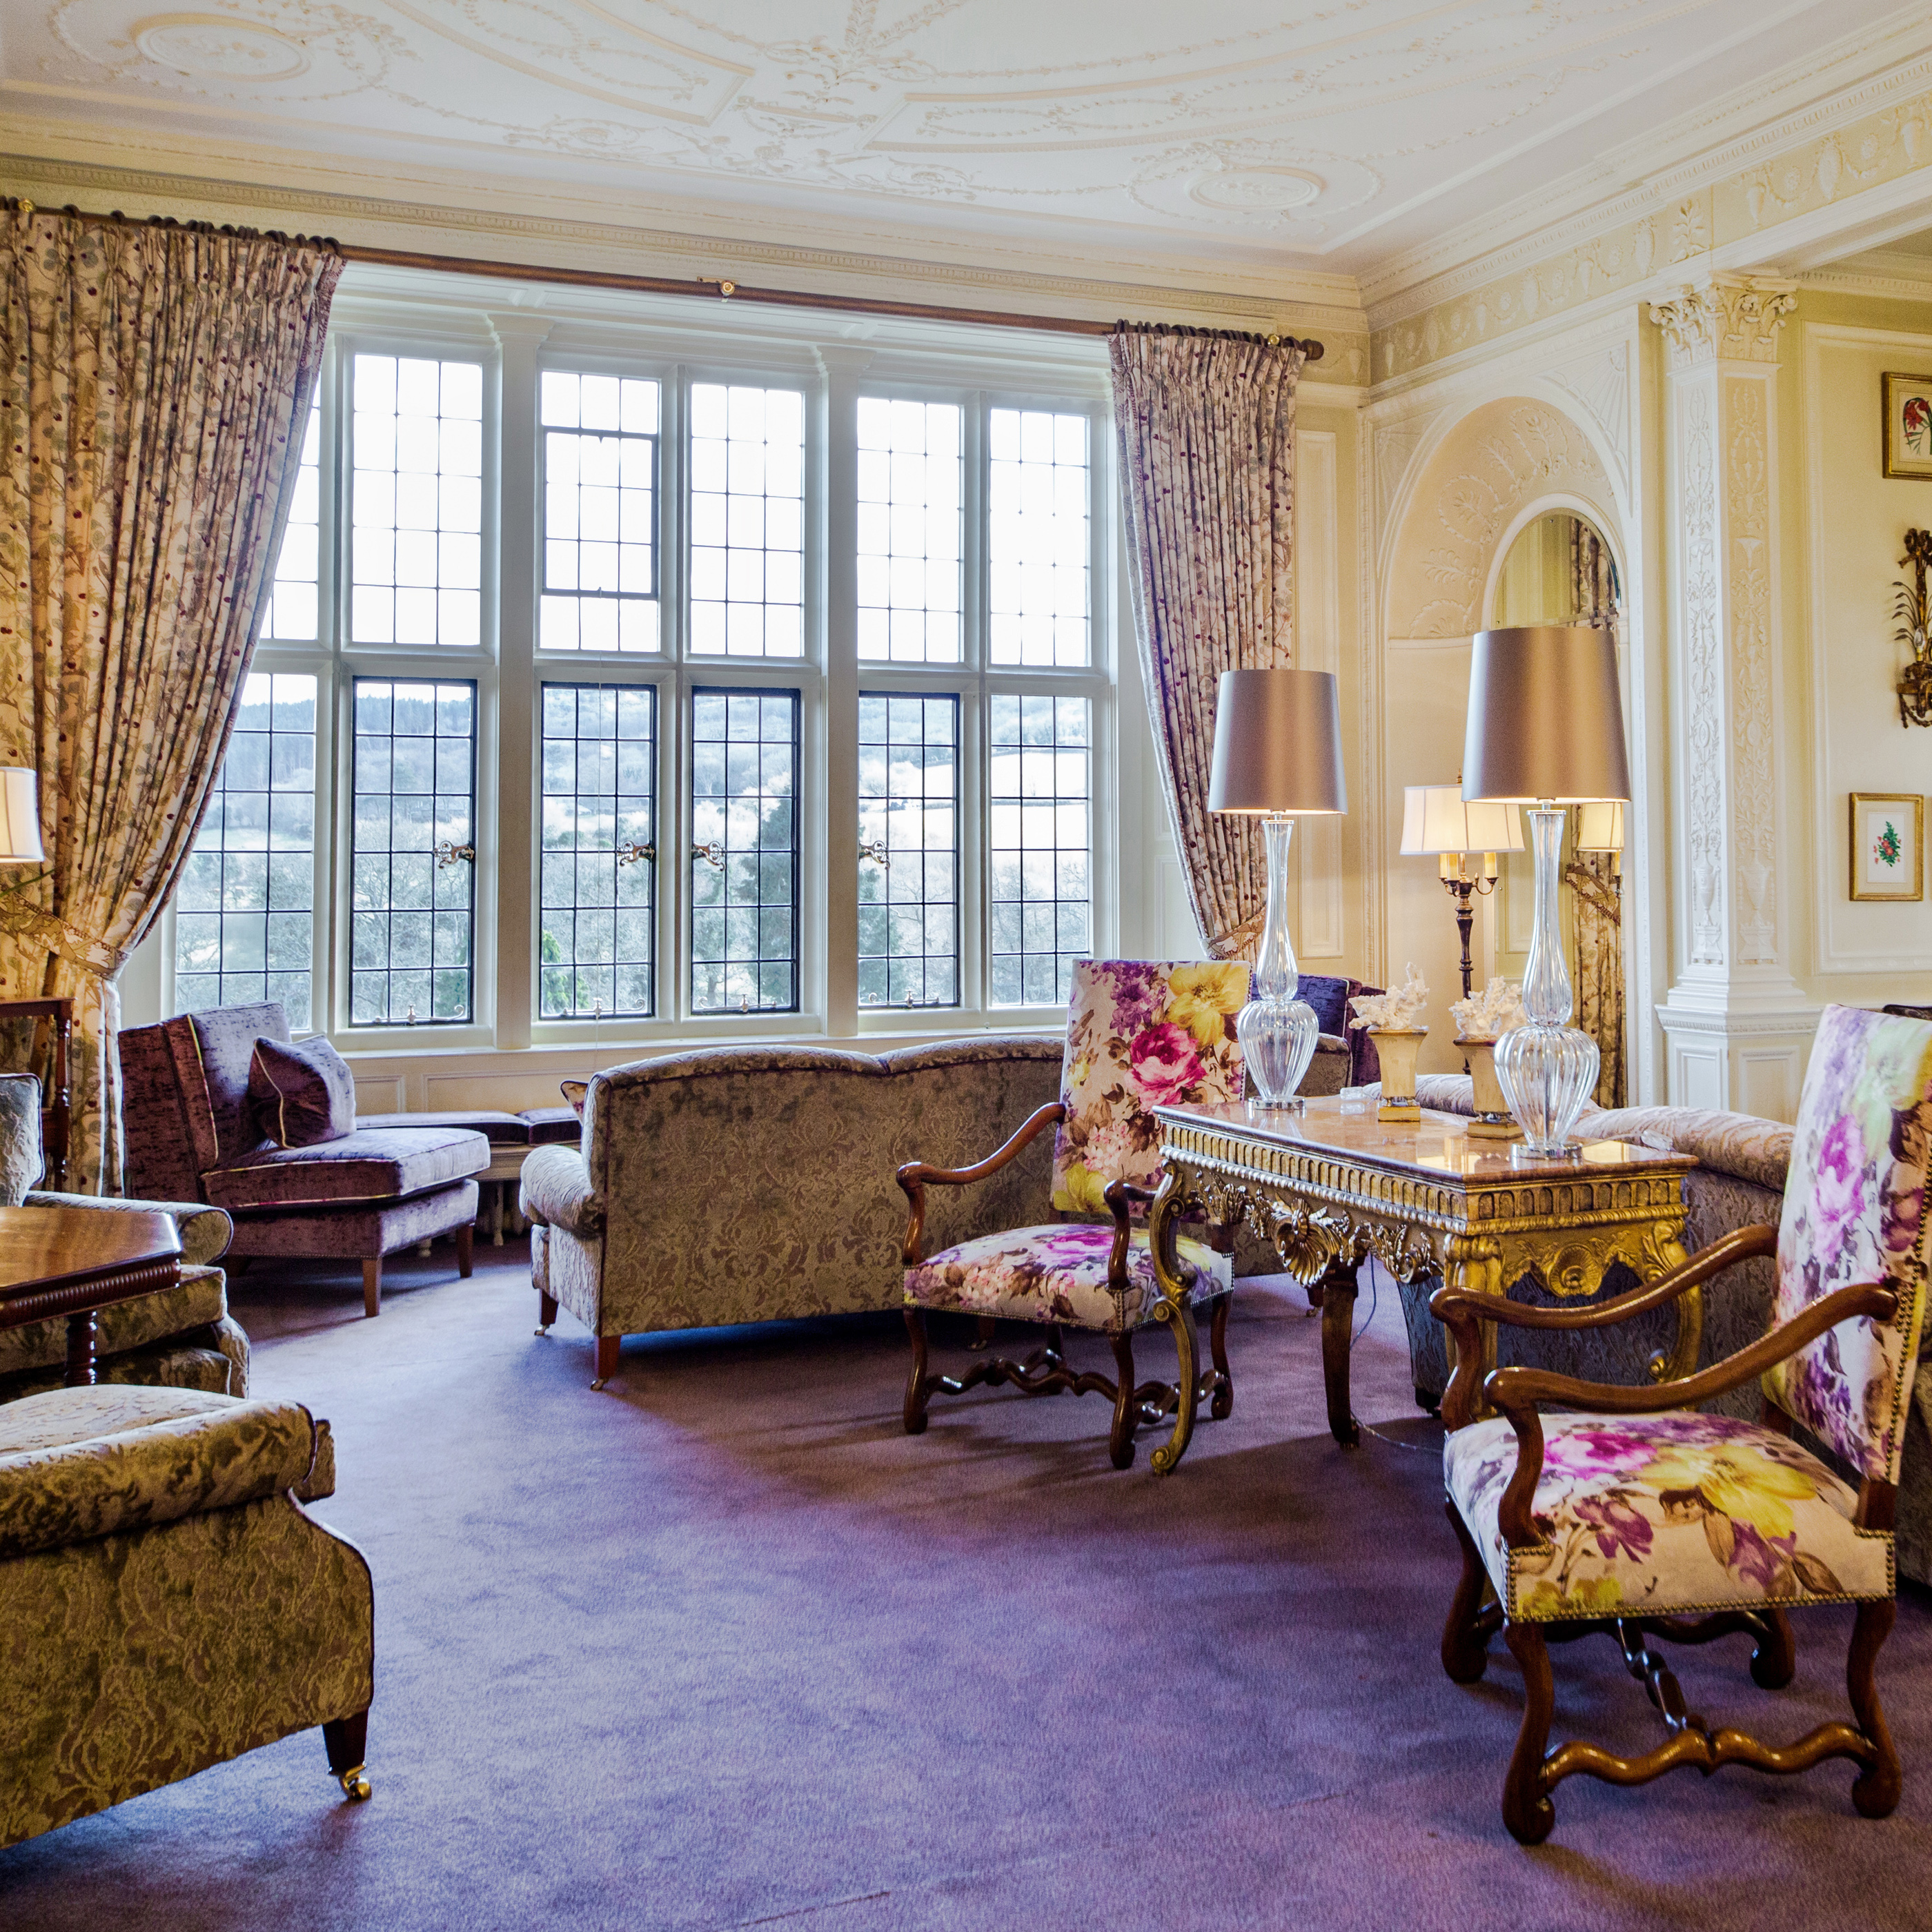 The Adam Room at Bovey Castle